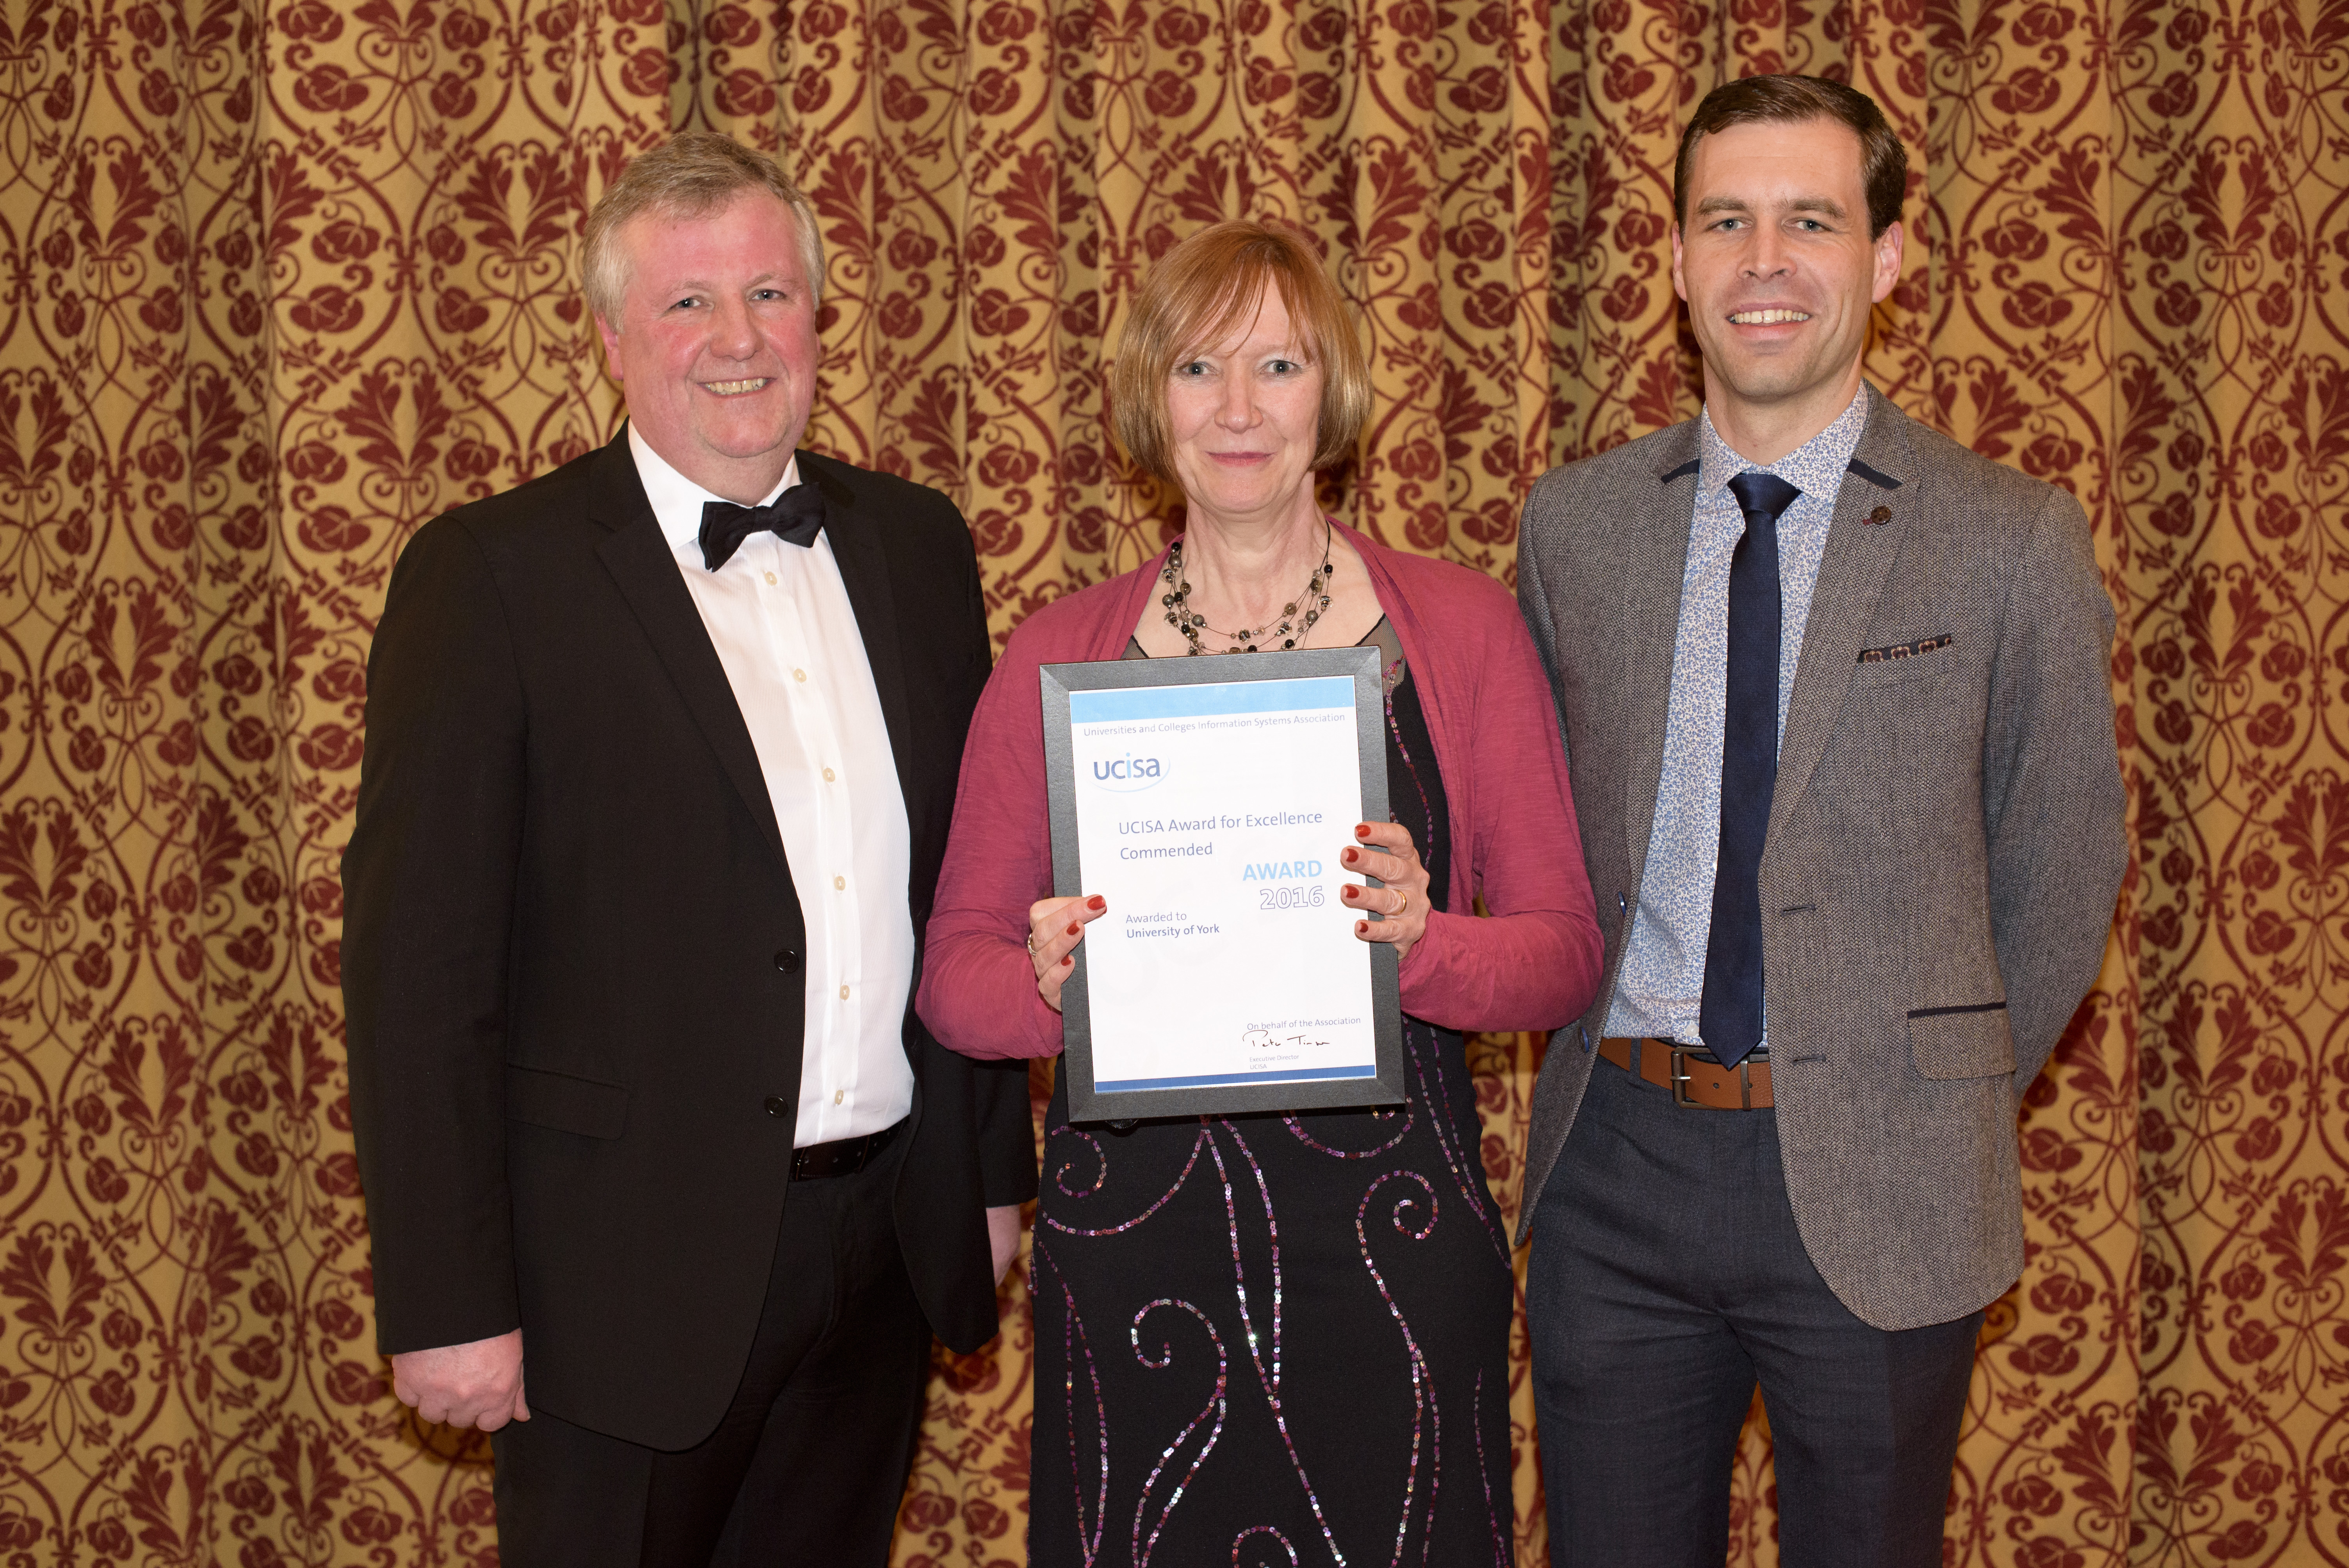 Heidi Fraser-Krauss and Andrew Main are presented with a Commended certificate in the 2016 UCISA Award for Excellence.